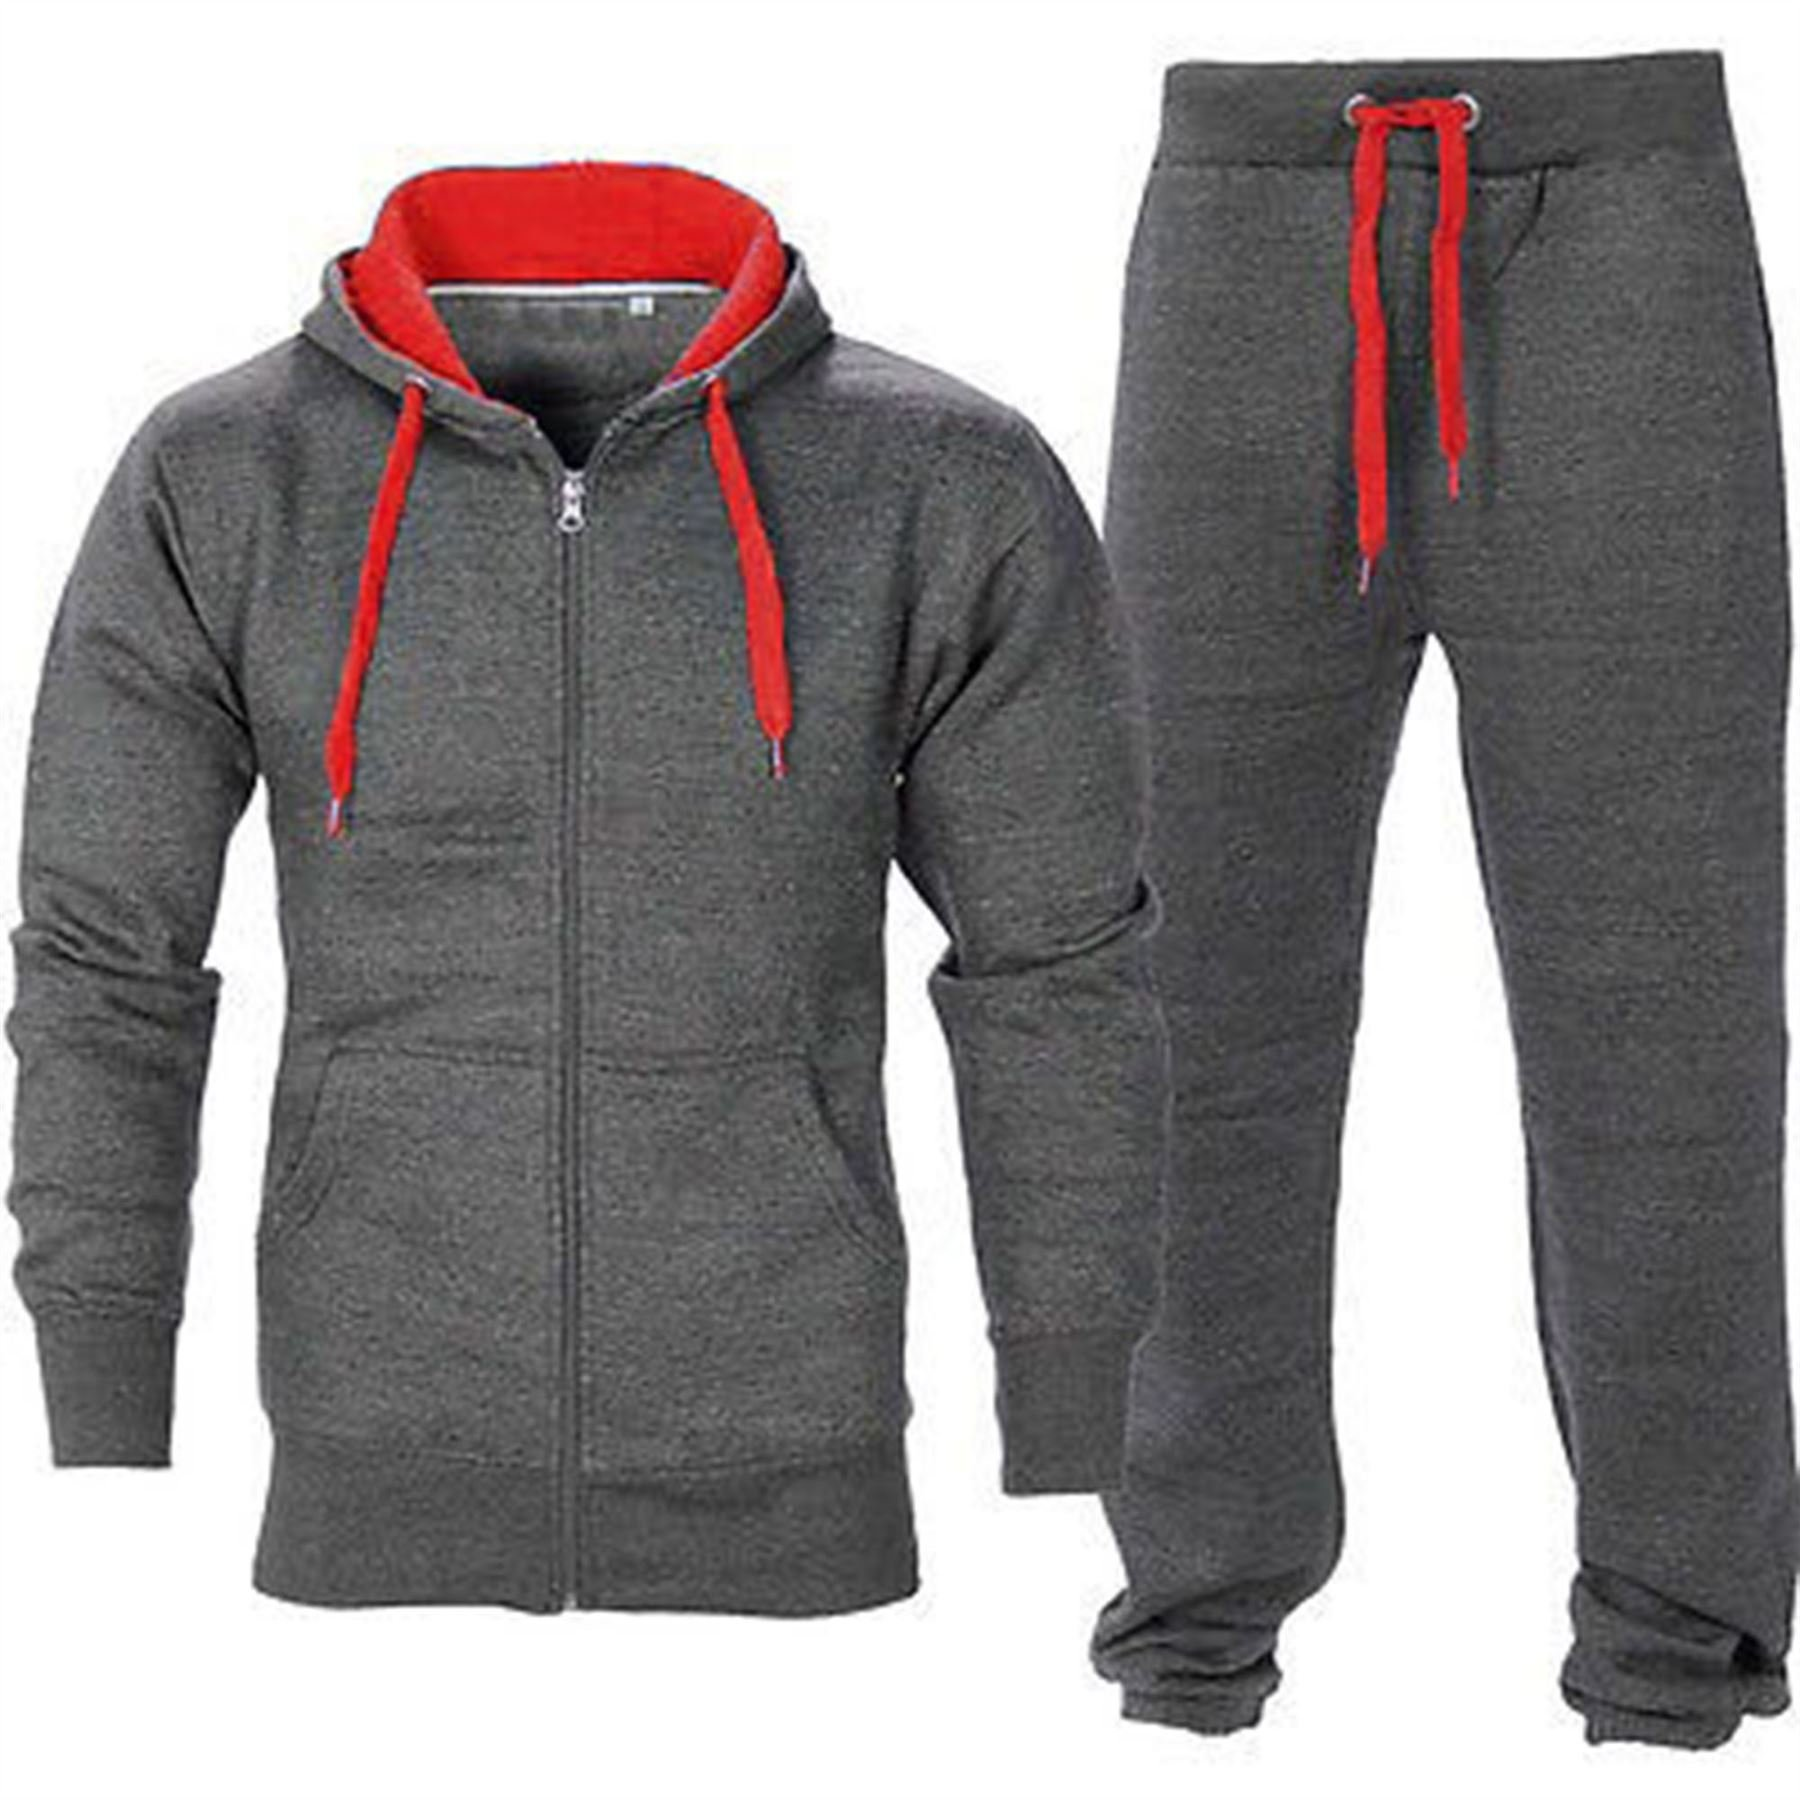 OOPS OUTLET Men's Gym Contrast Jogging Full Tracksuit Hoodies Fleece Joggers Set X-Large Charcoal/Red by Oops Outlet